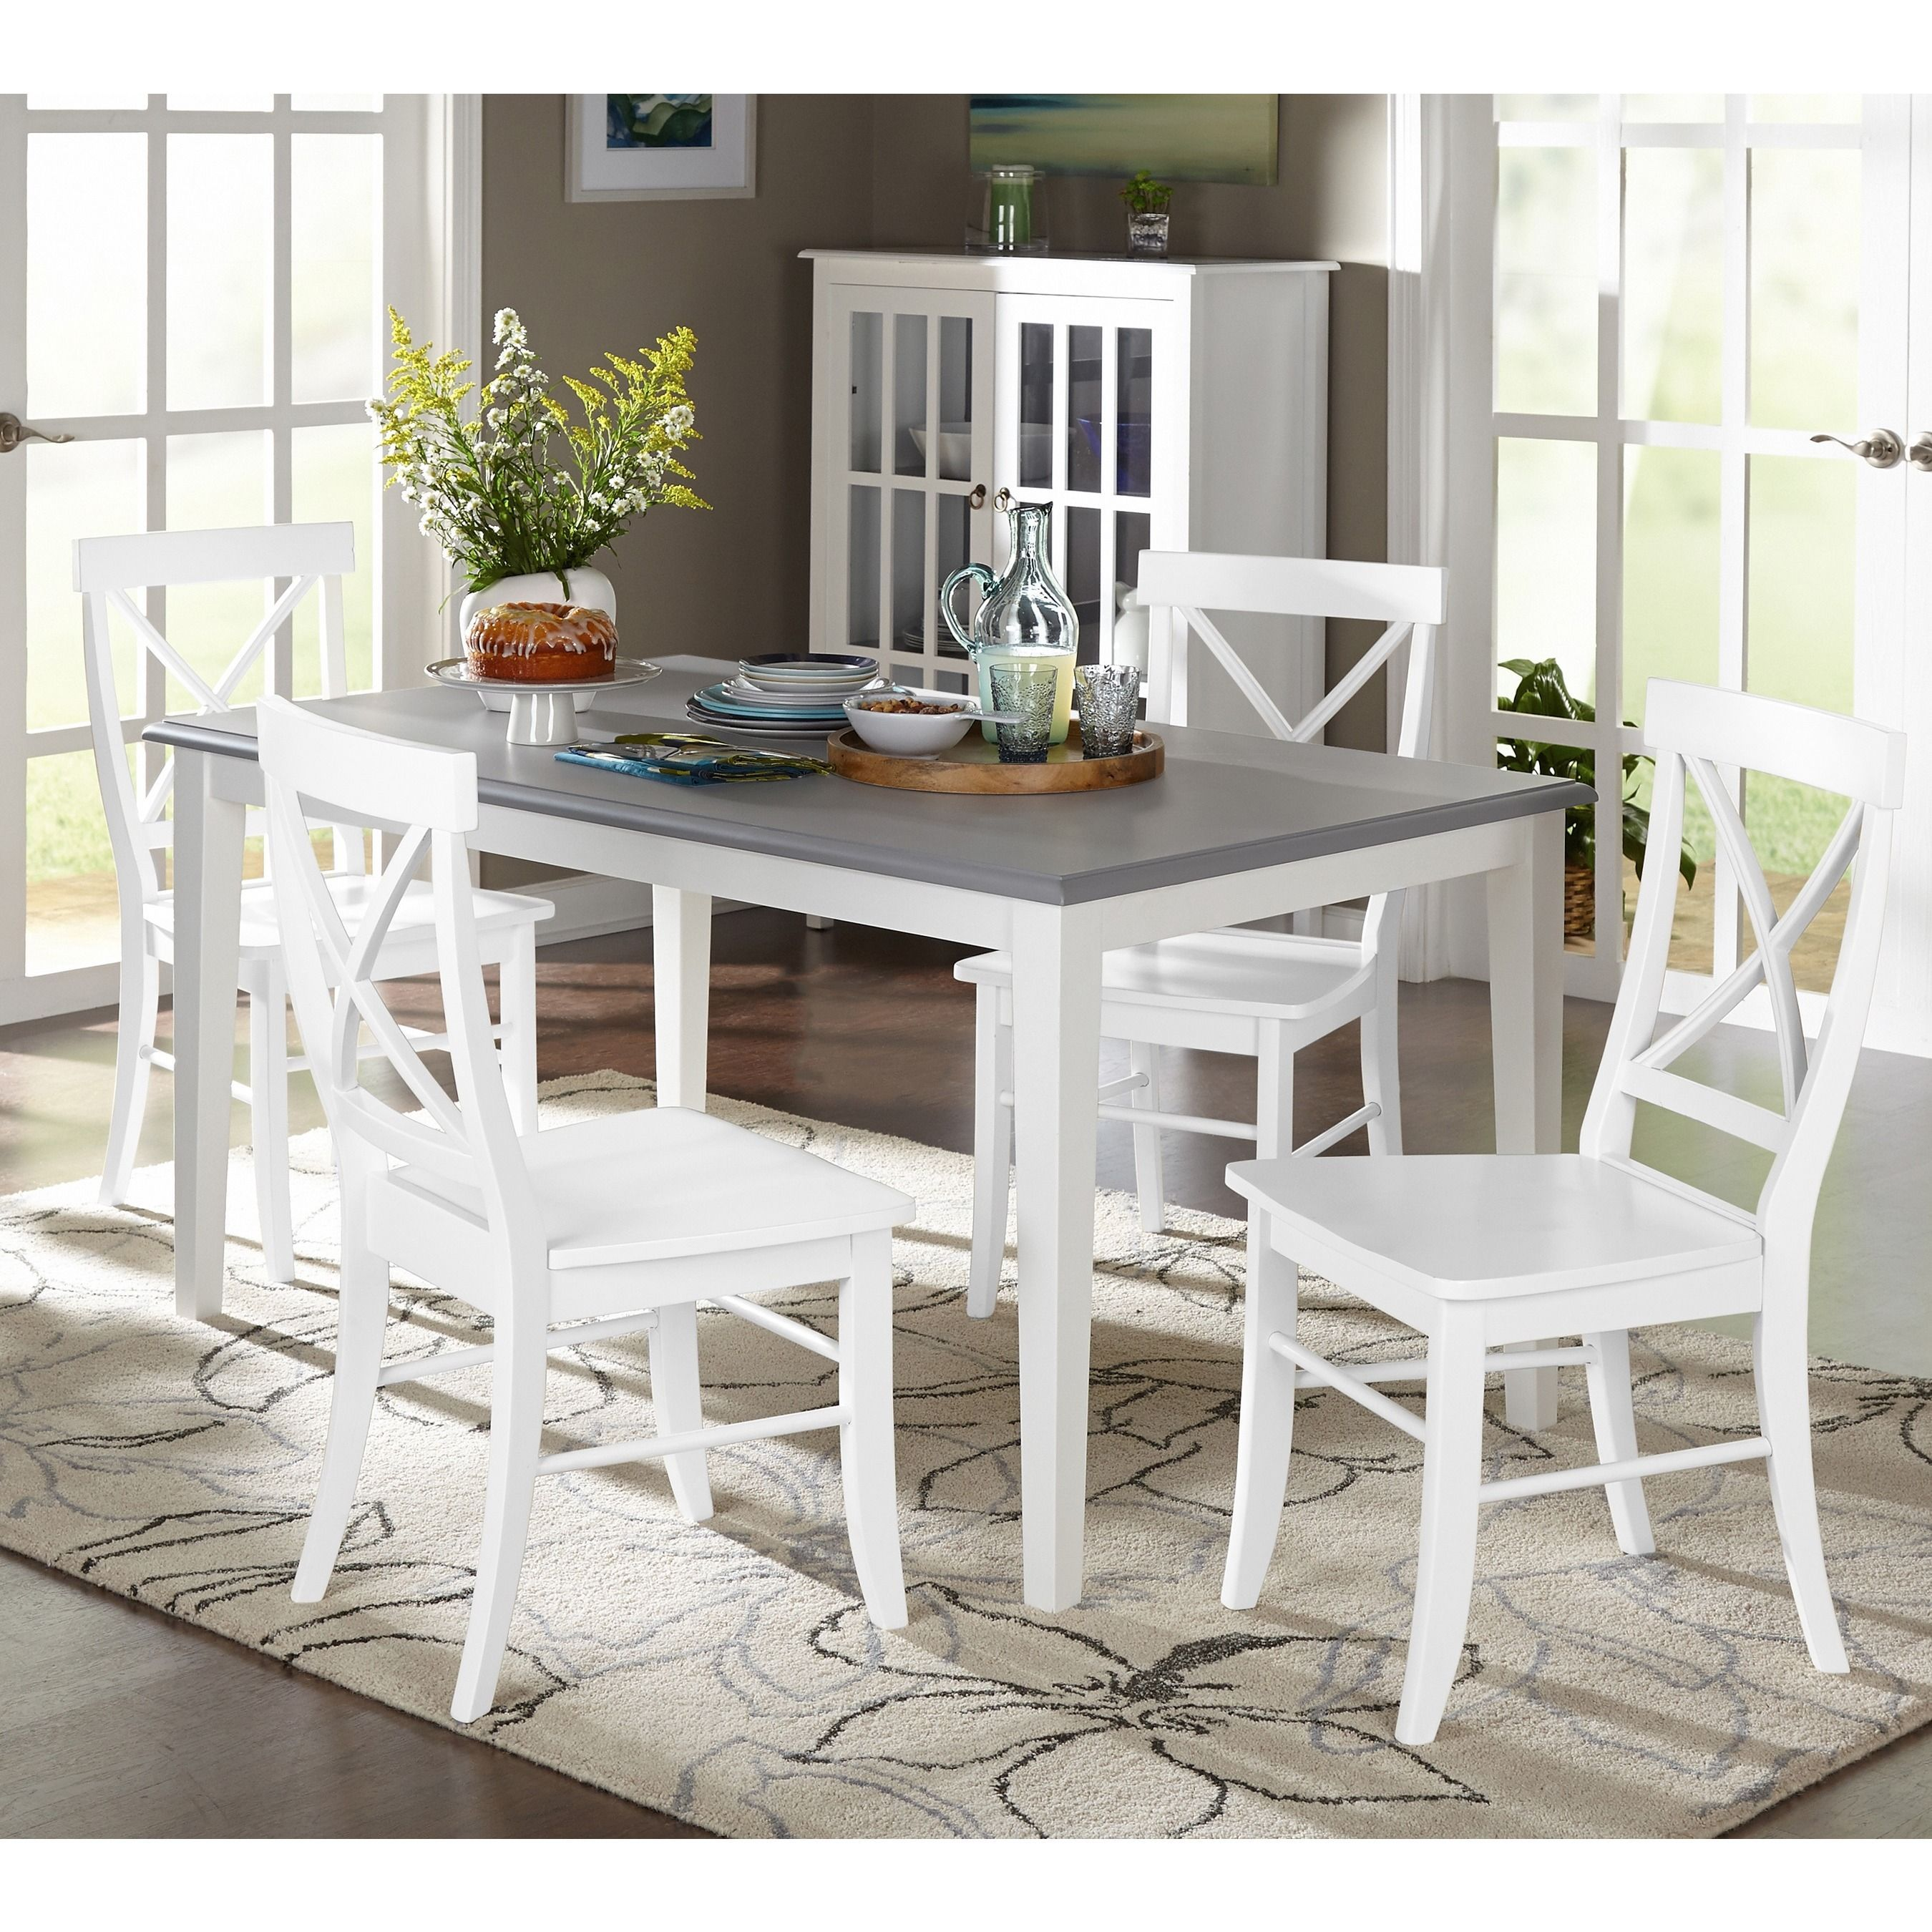 Rooms To Go Dining Sets: Simple Living 5-piece Helena Dining Set (Grey), Gray